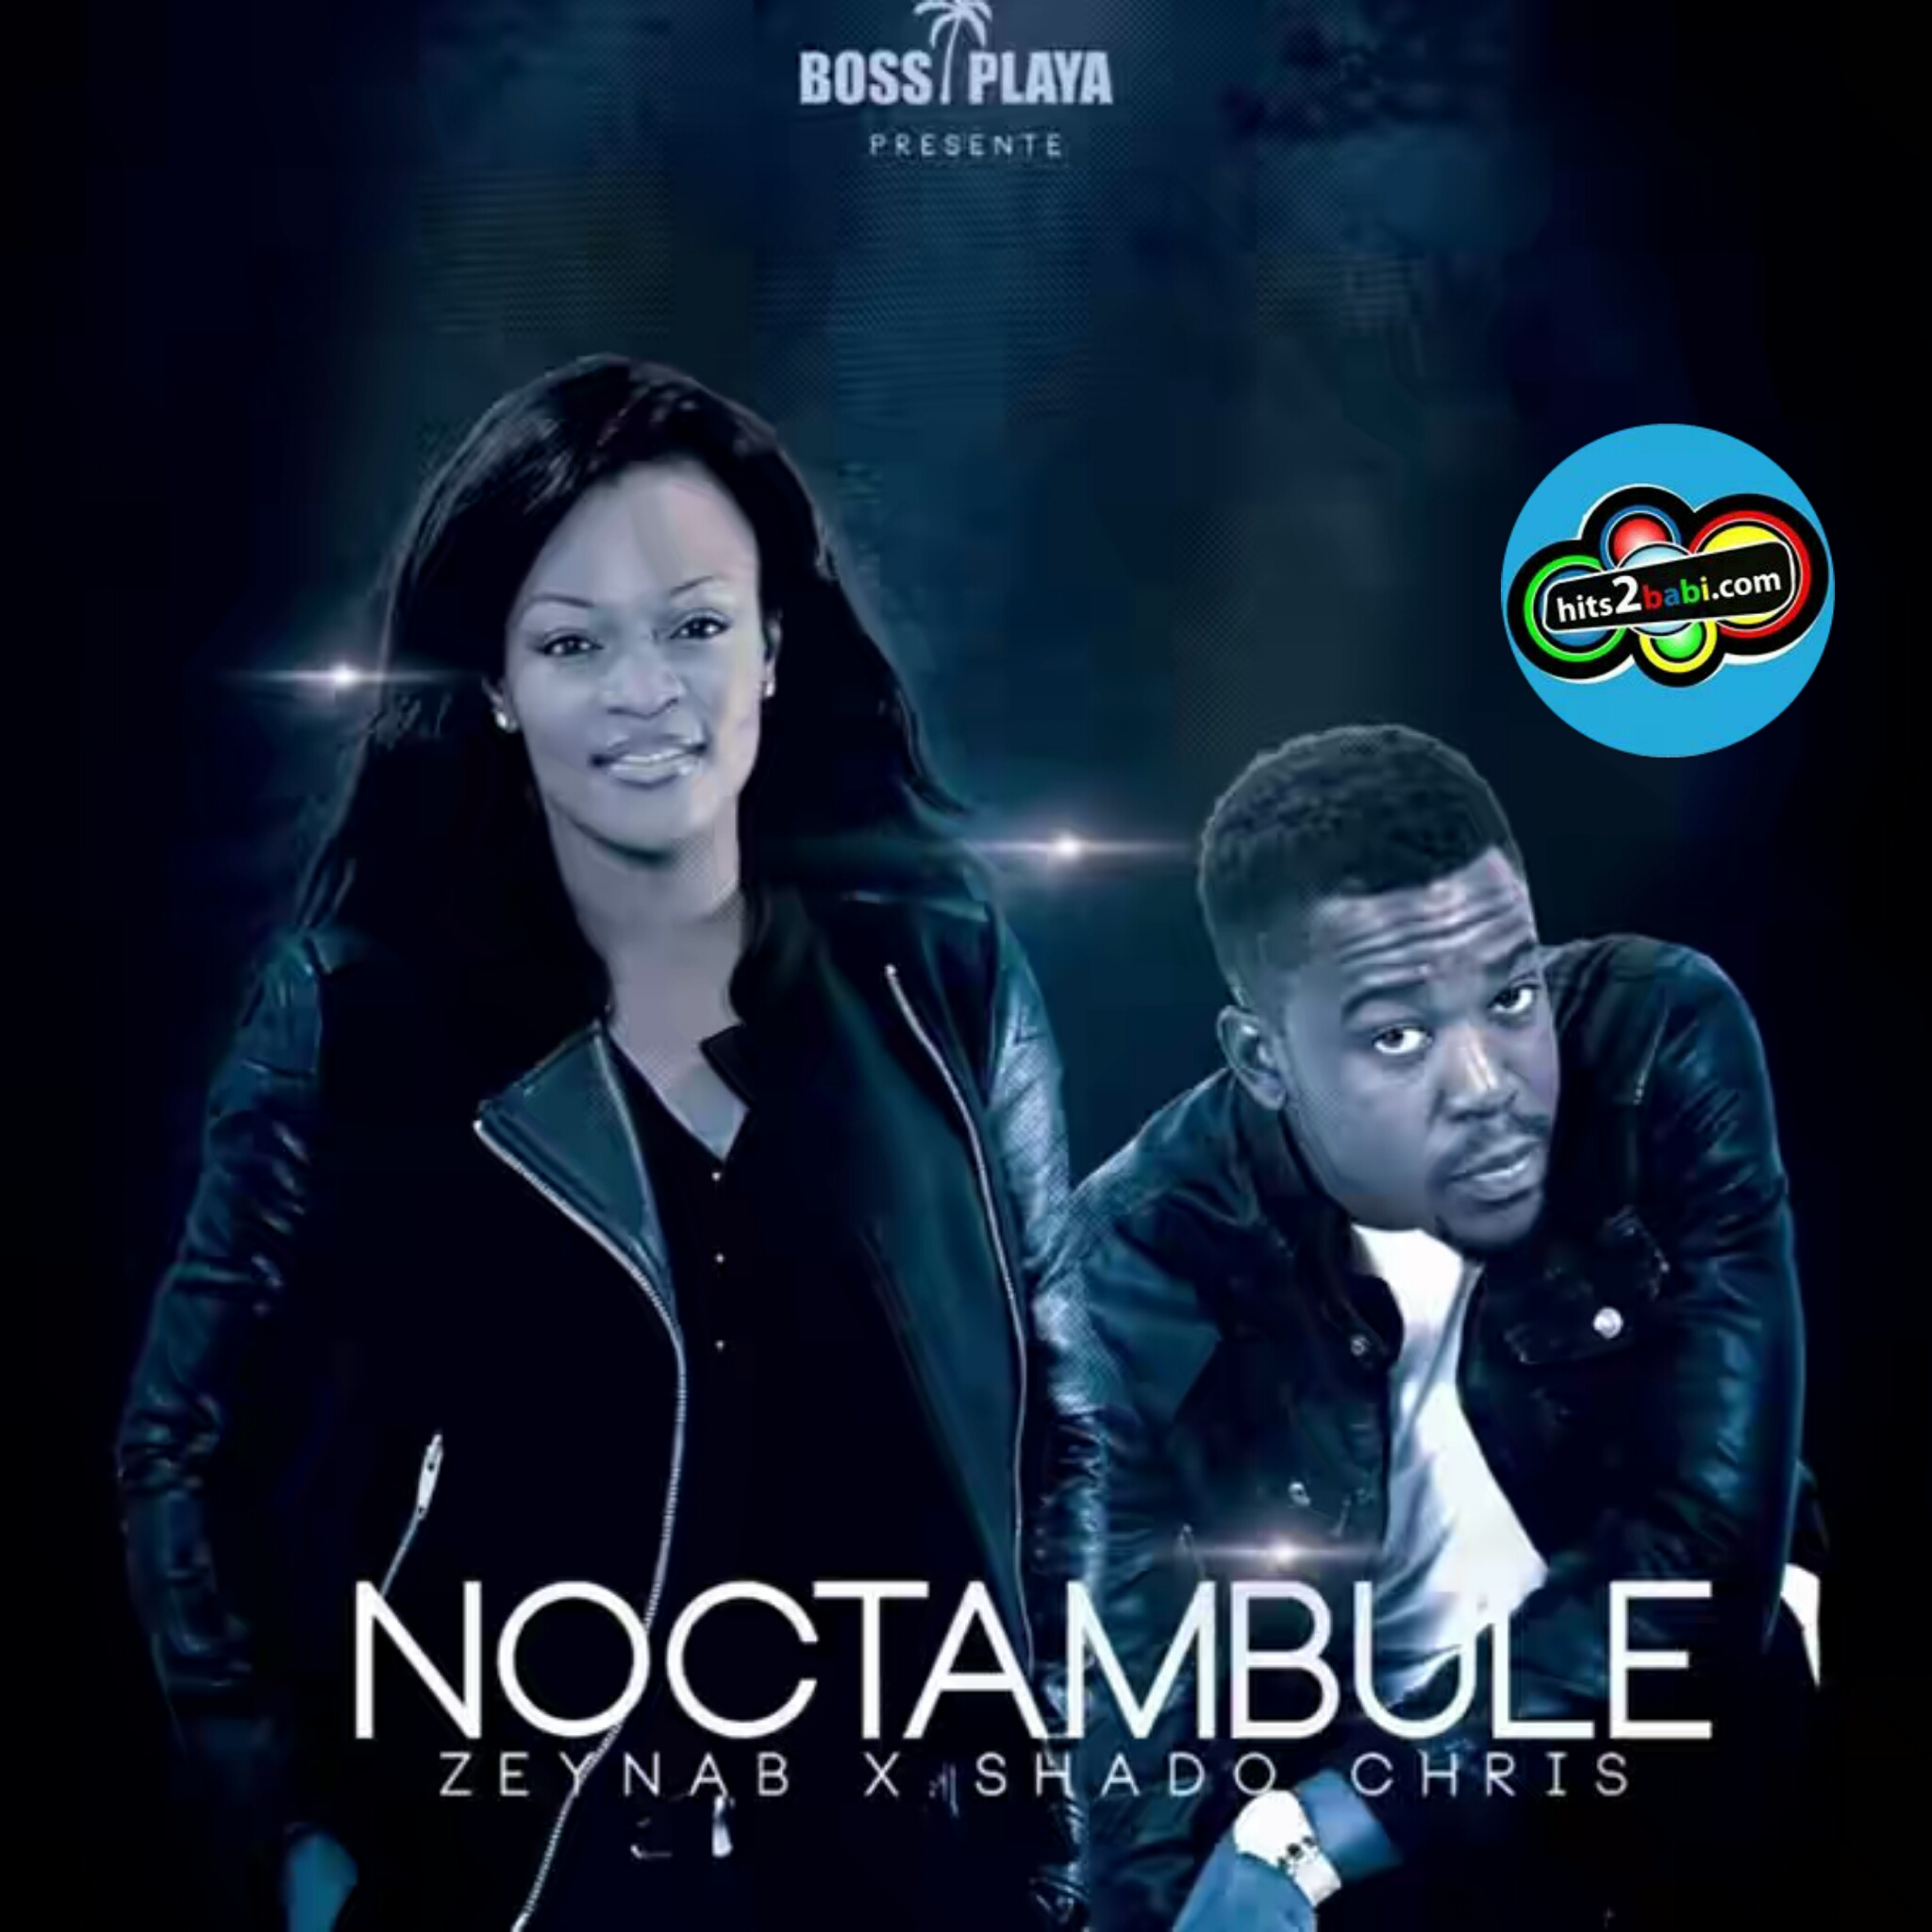 ZEYNAB FEAT SHADO CHRIS - NOCTAMBULE